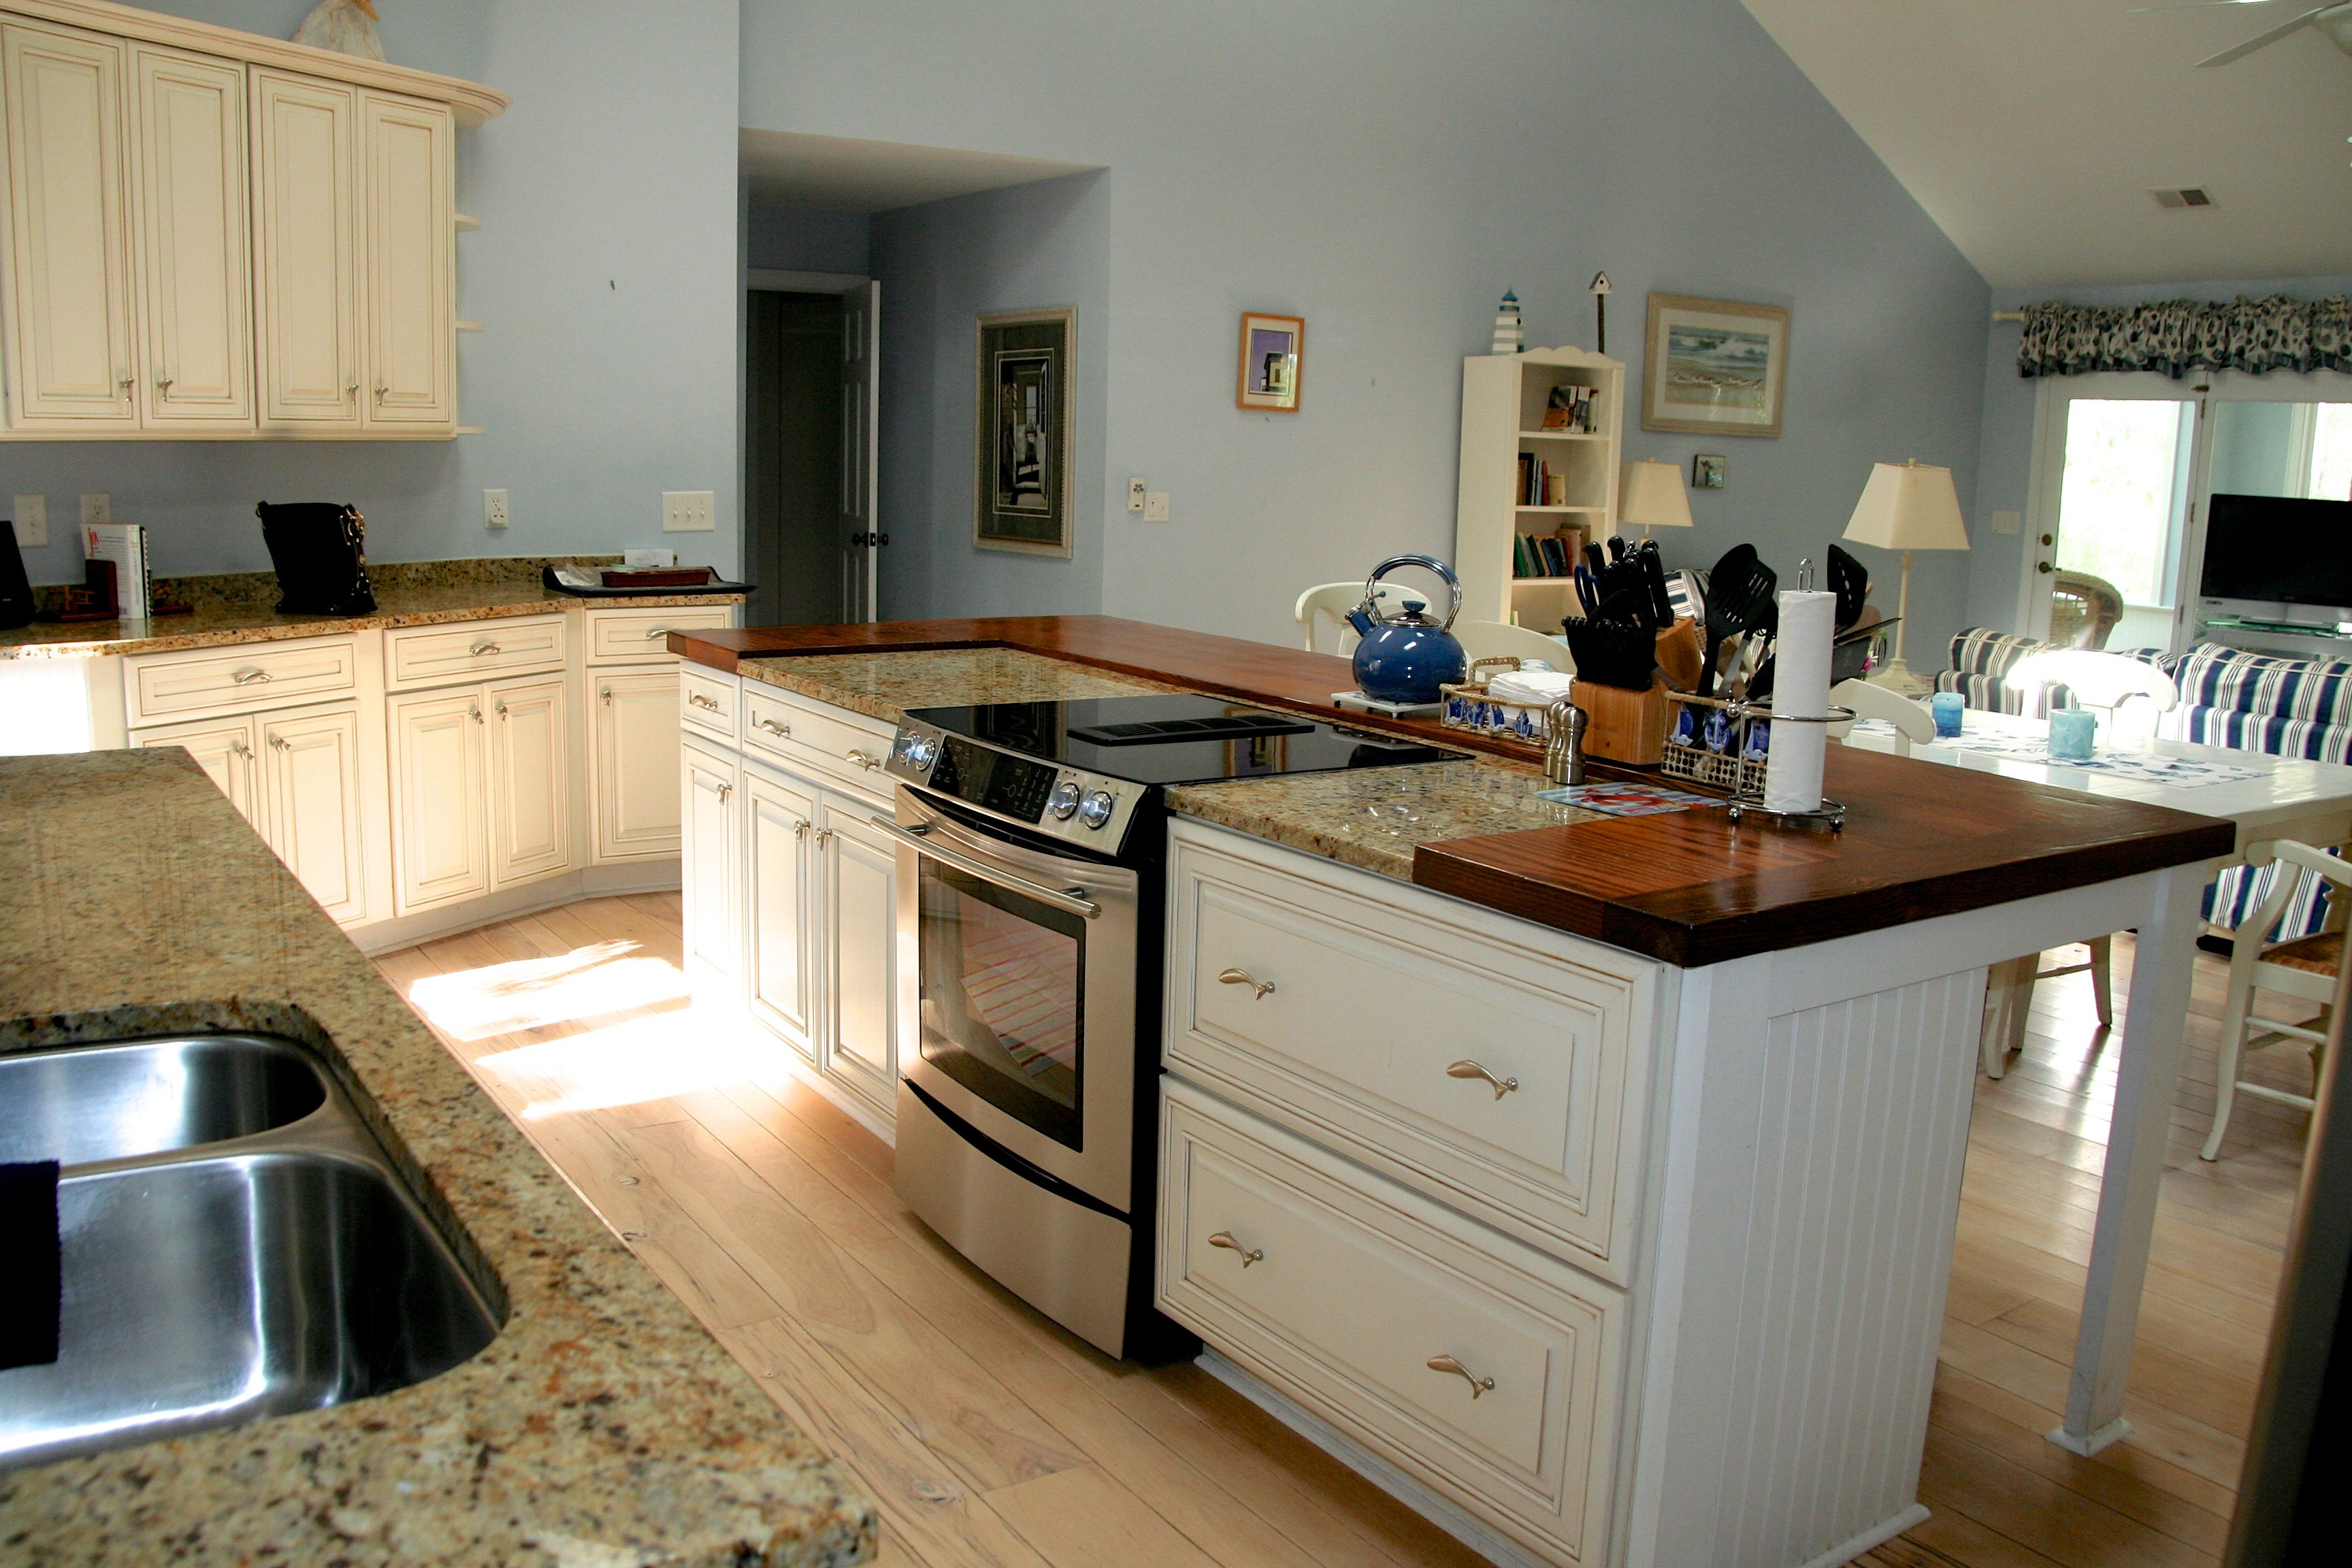 Features include stainless applicances & custom cabinetry.